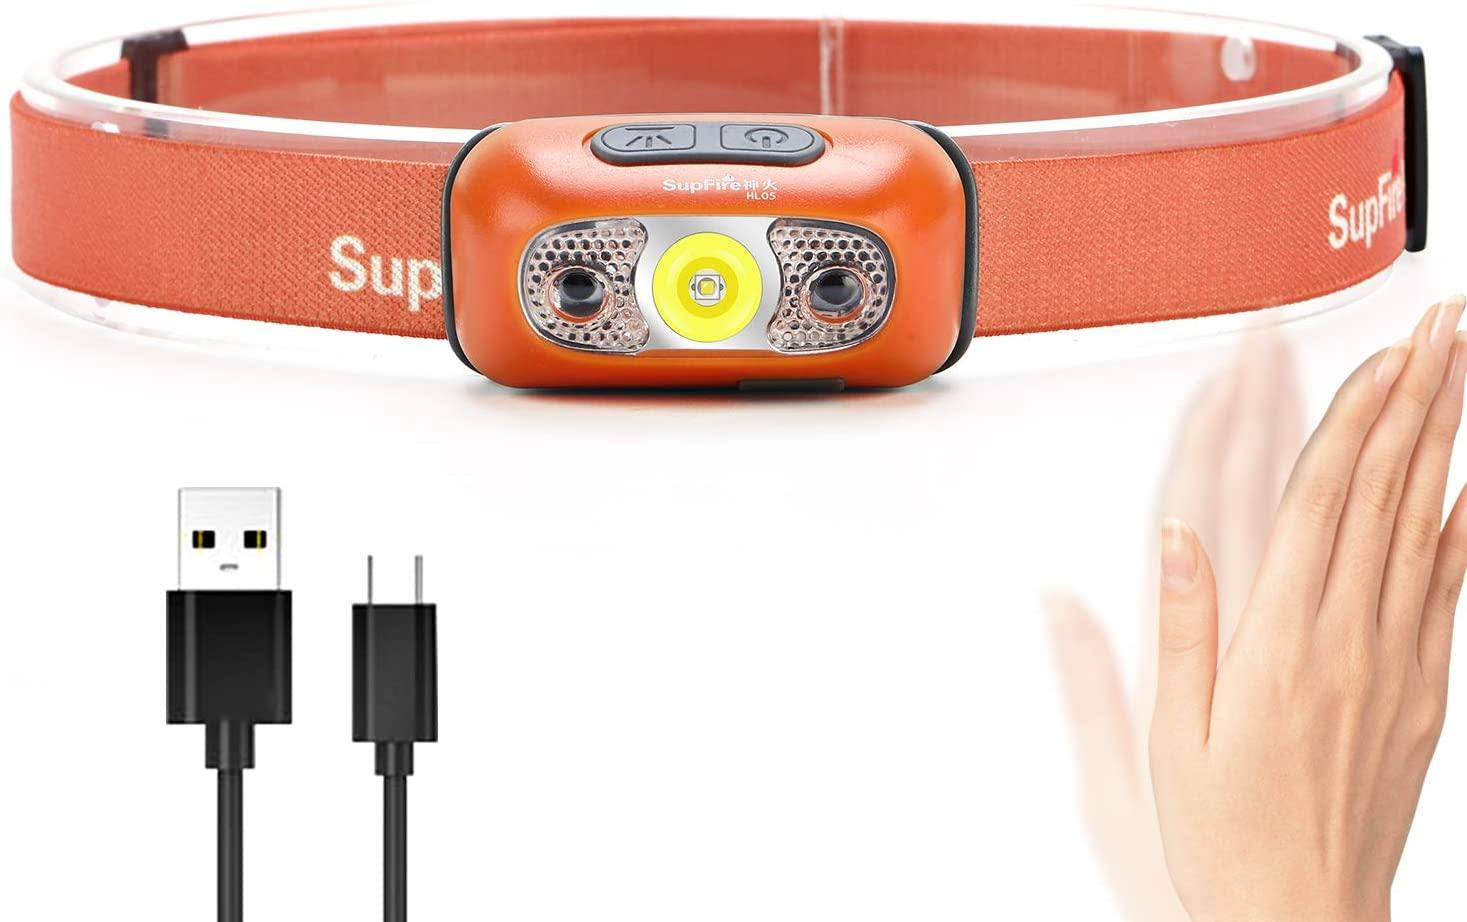 Supfire Headlamp LED Headlight 500 Lumens Cree LED Head lamp with Temperature Induction SwitchRechargeable with USB Cable 4 Modes HL05